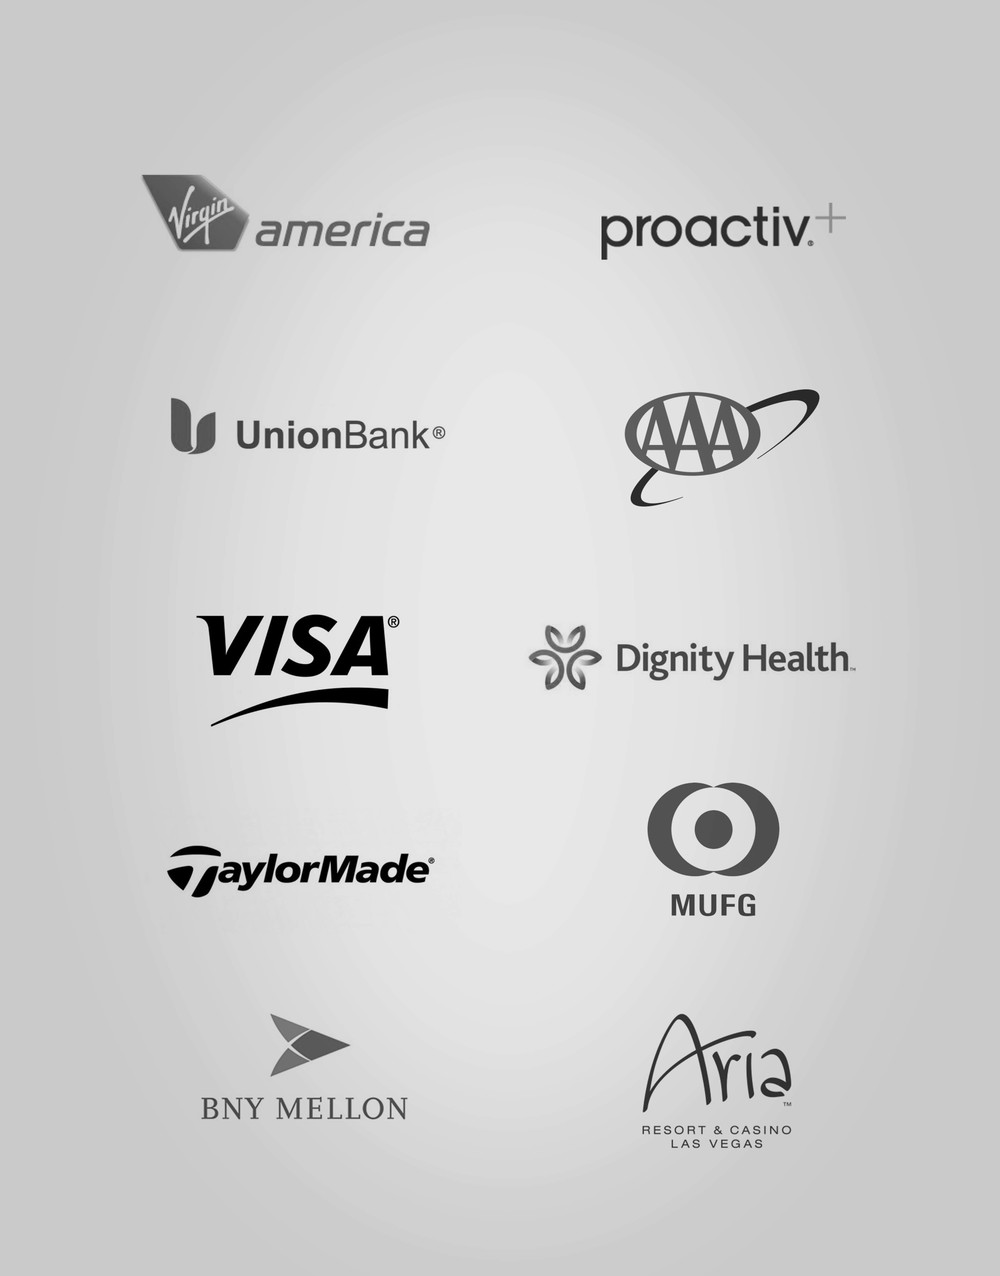 Brands in which I've done professional work.